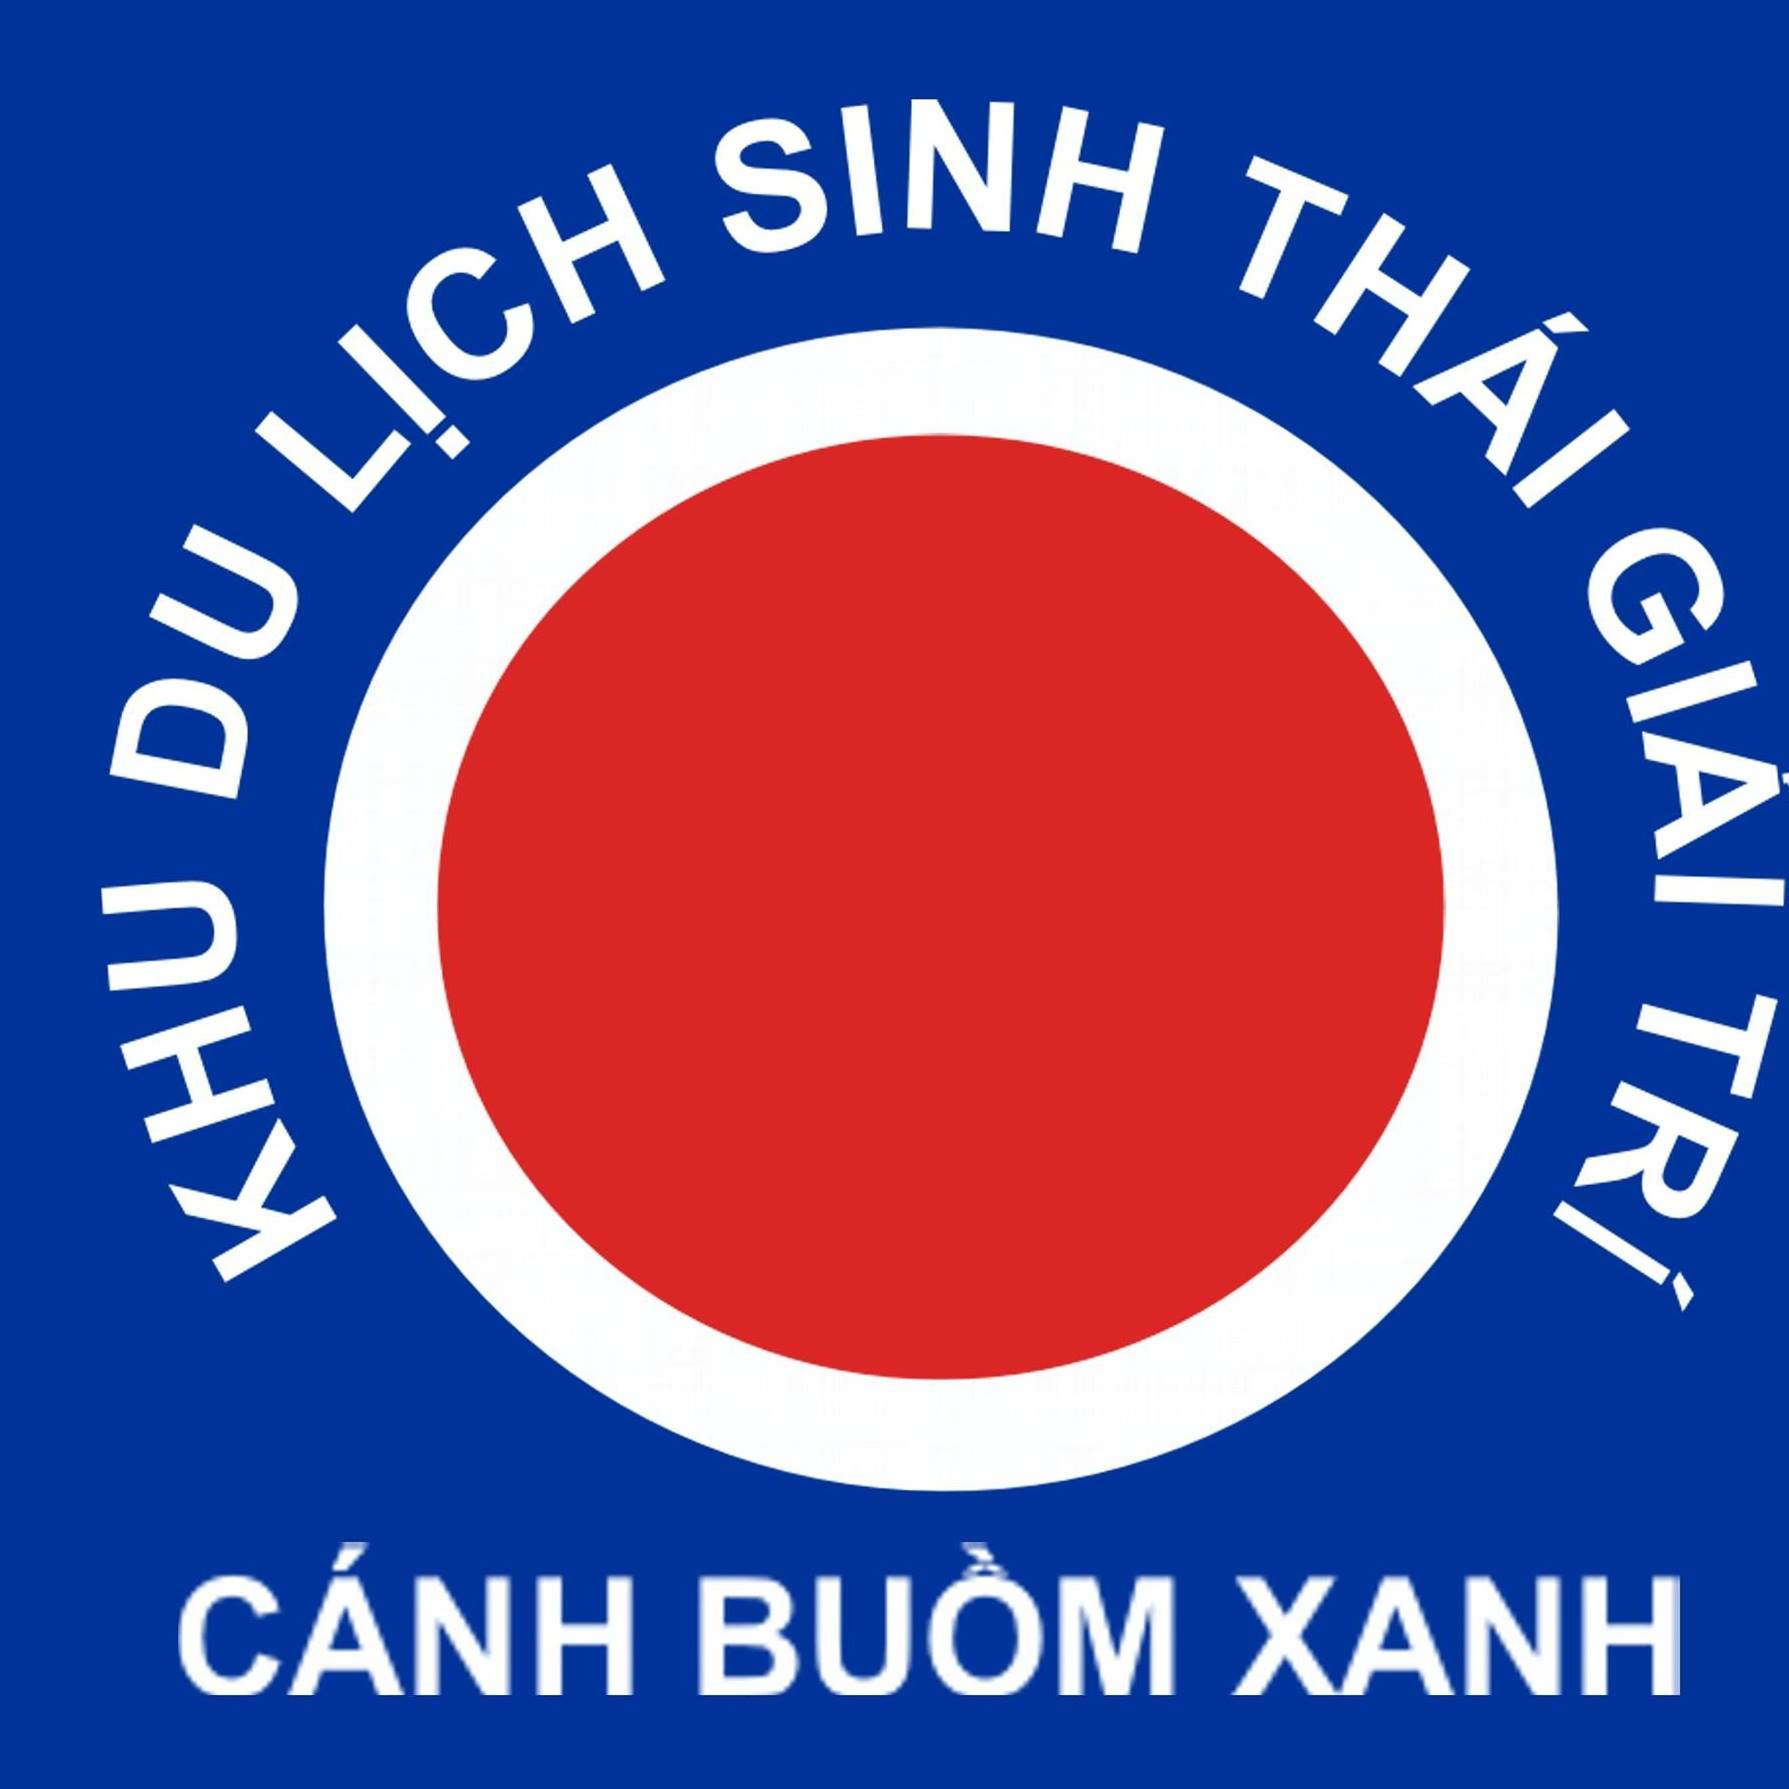 20.Canh Buom Xanh Sinh Thai